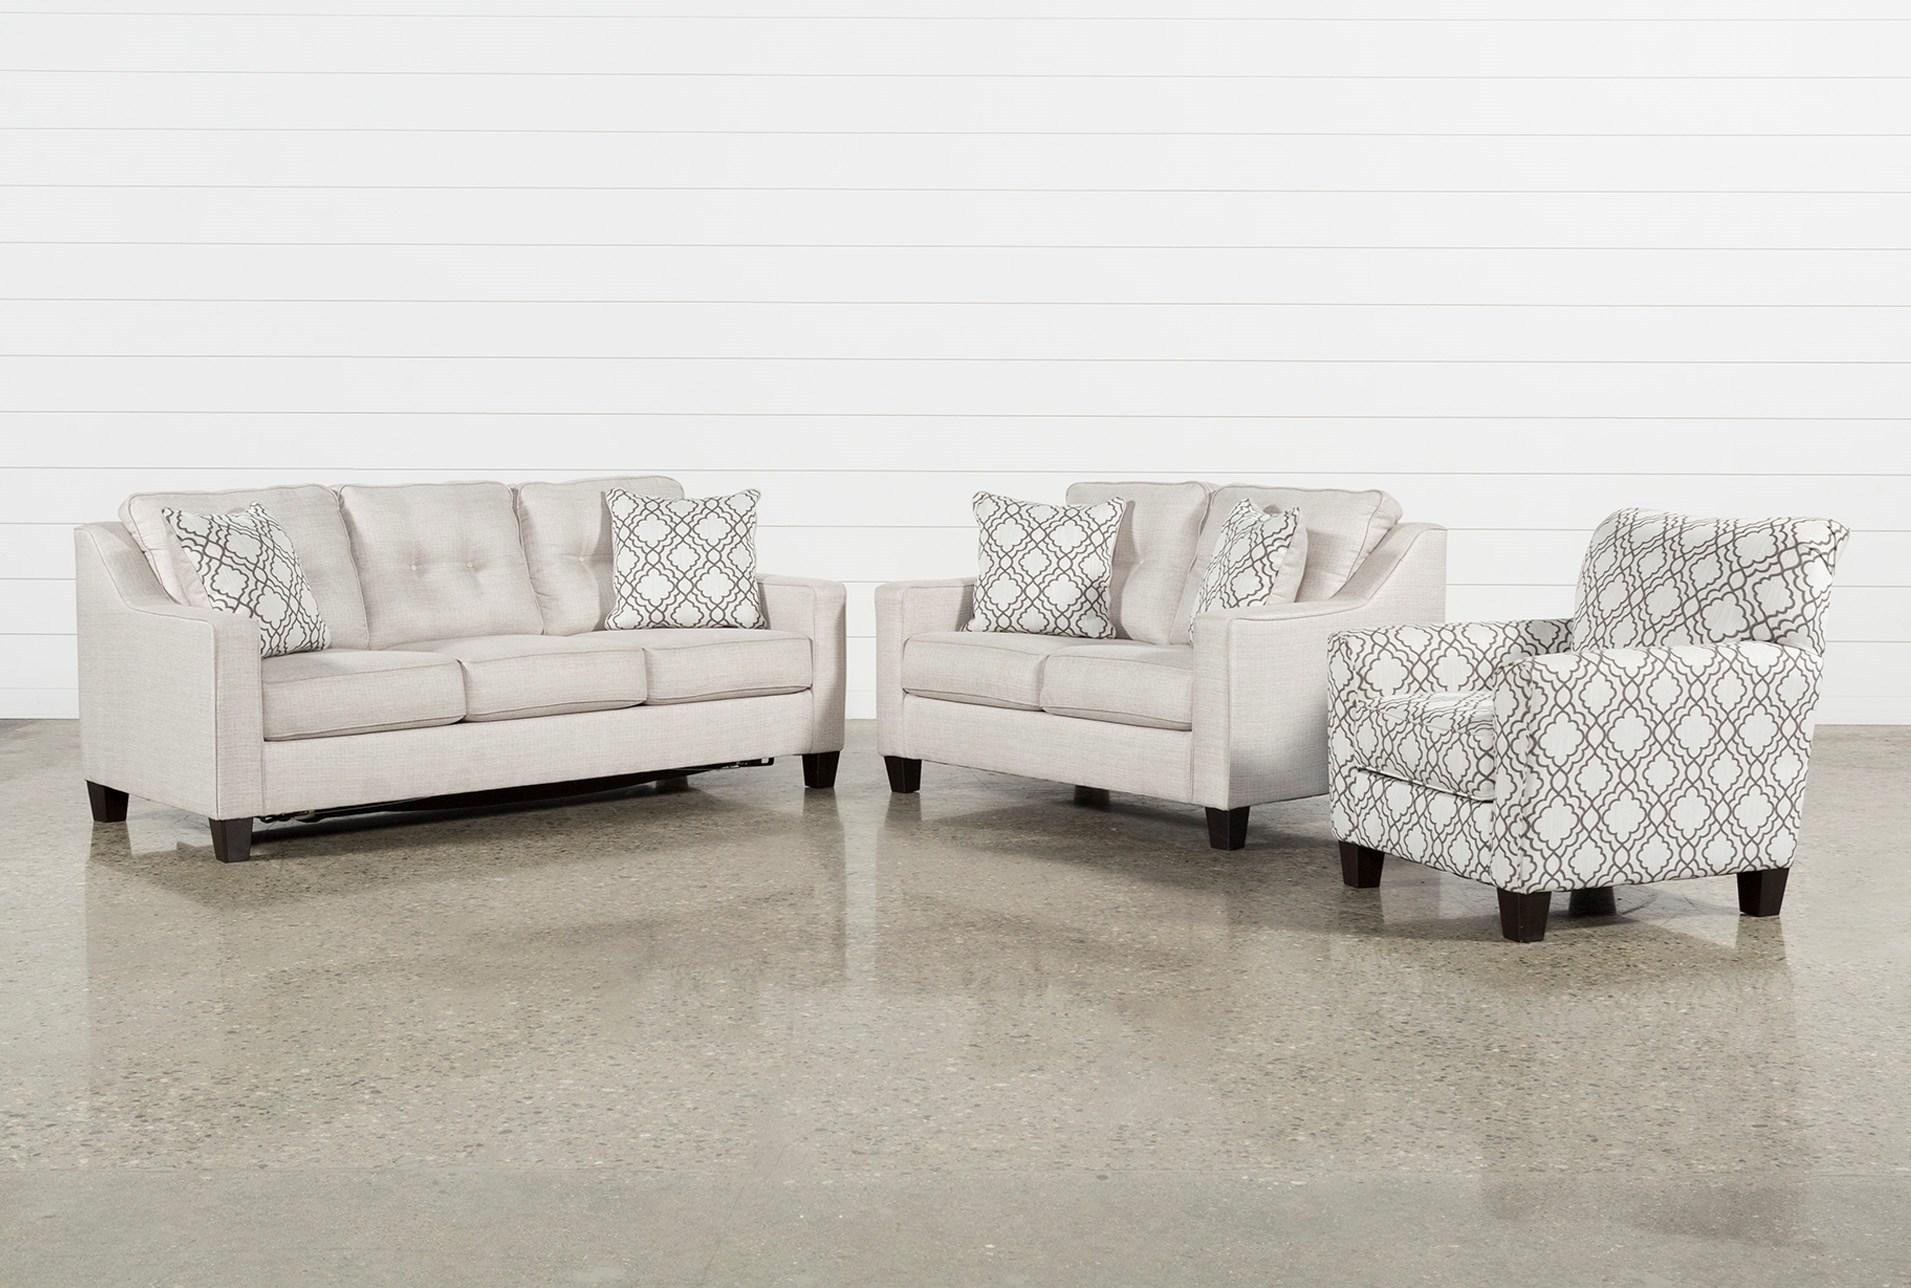 3 Piece Living Room Set Casta Products Pinterest Sofa And Small With Mcdade Ash Sofa Chairs (Photo 5 of 25)